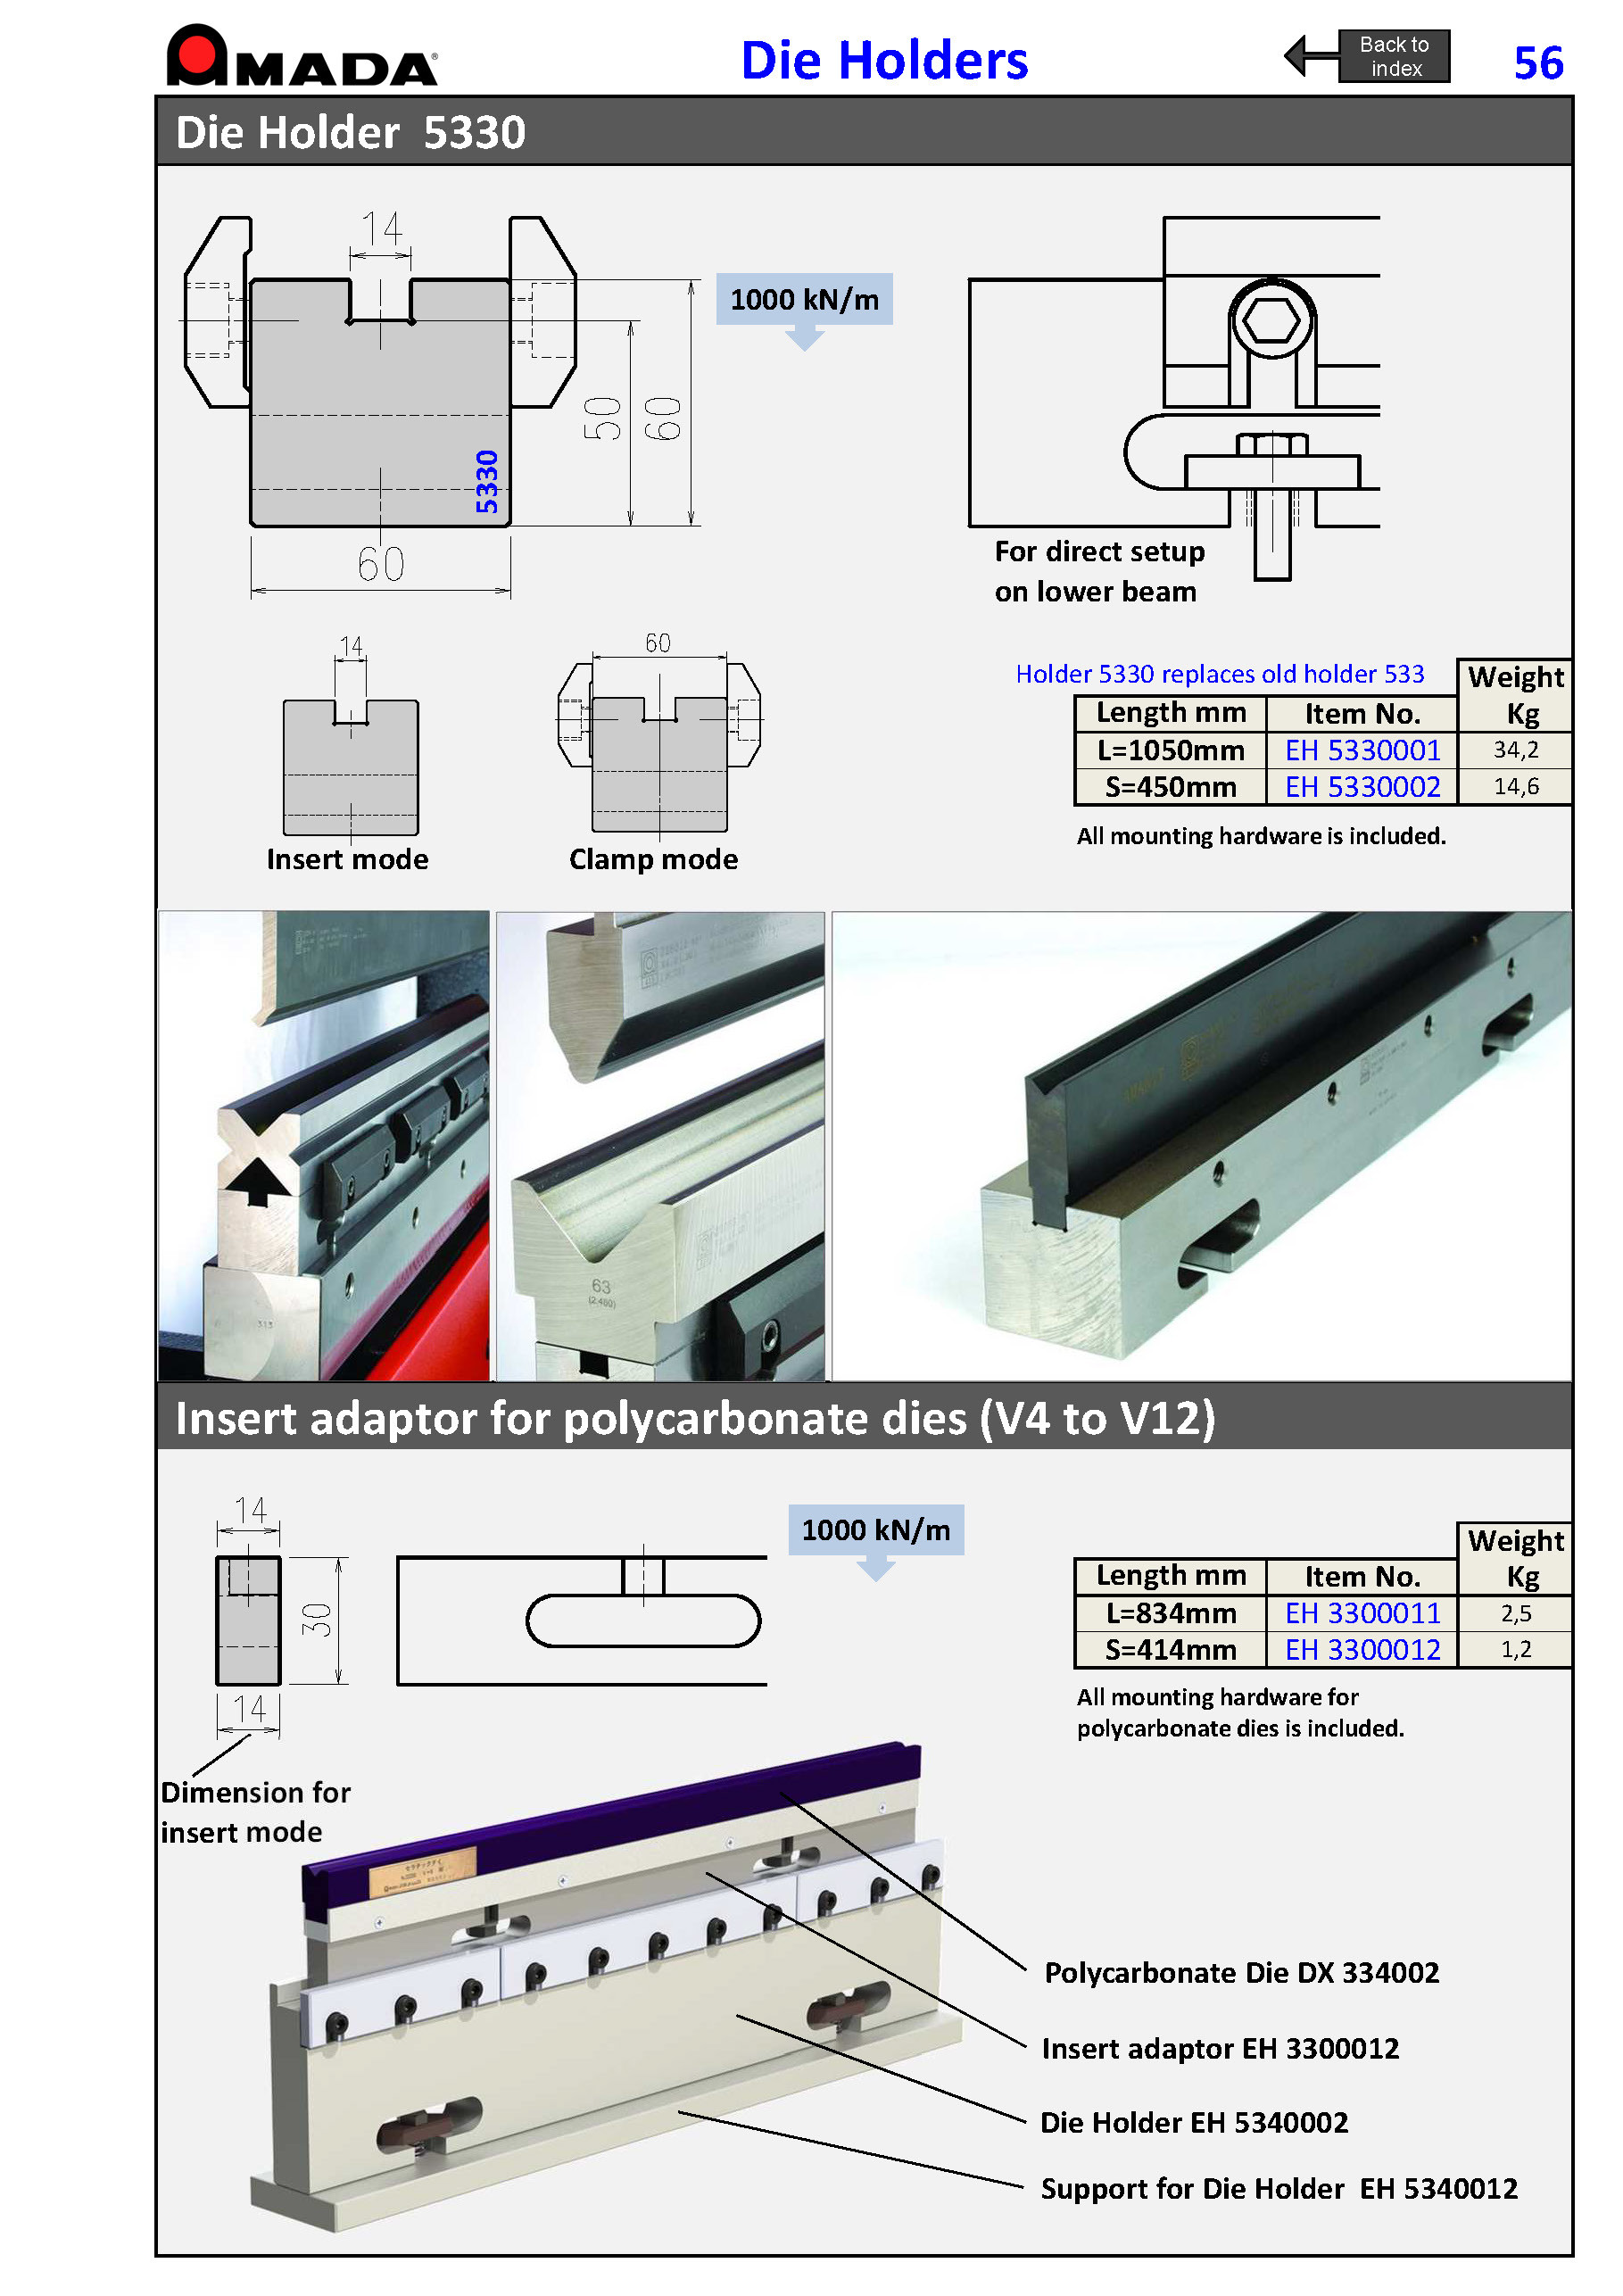 DIE HOLDER H60 (for dies with base 60) and H50 (for 1V insert dies) L1050